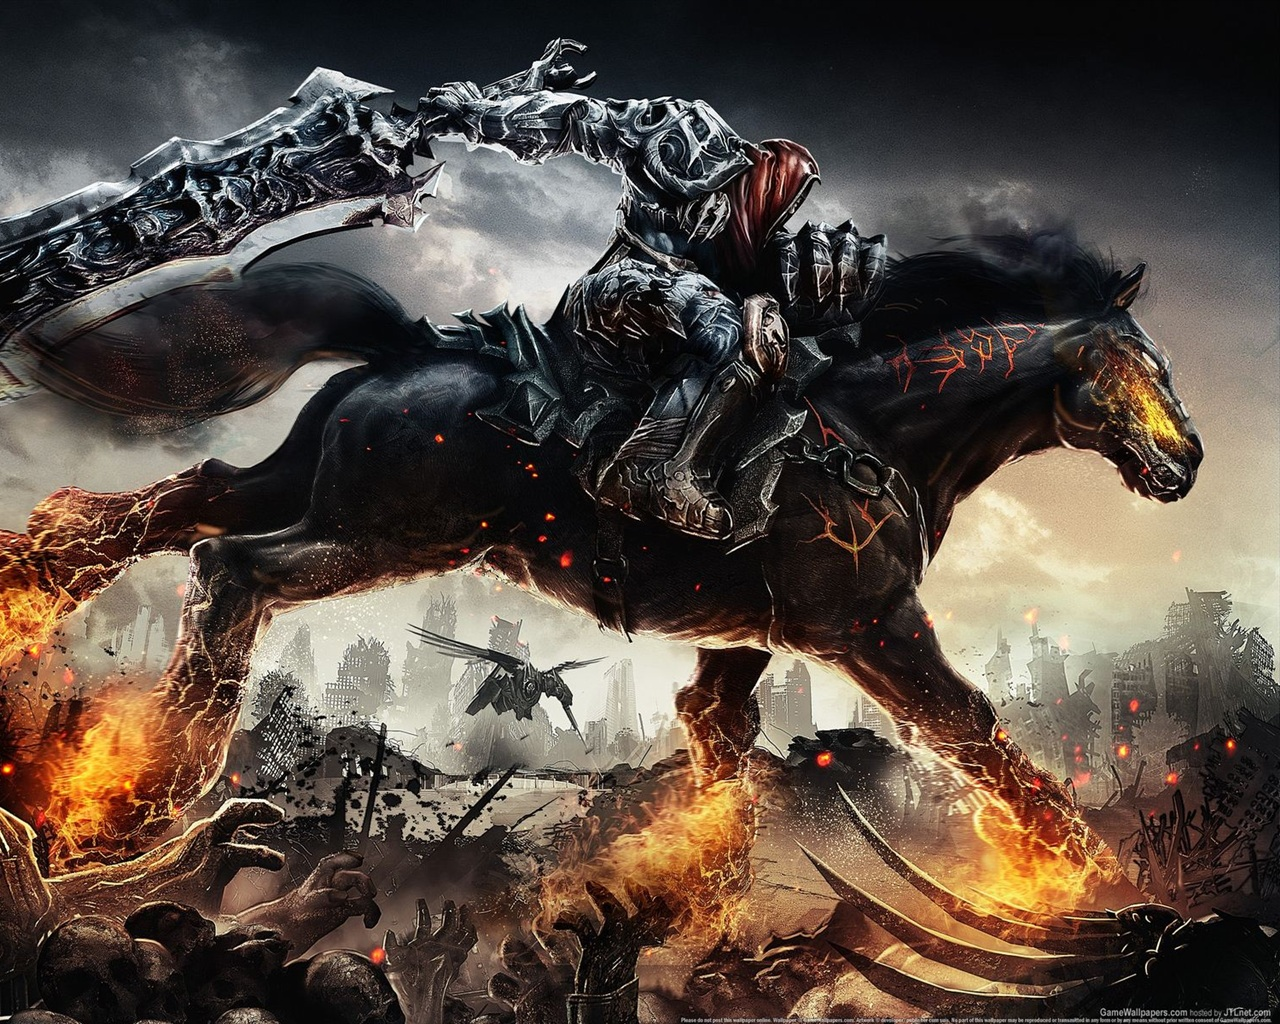 Darksiders Wrath of War wallpaper - 1280x1024